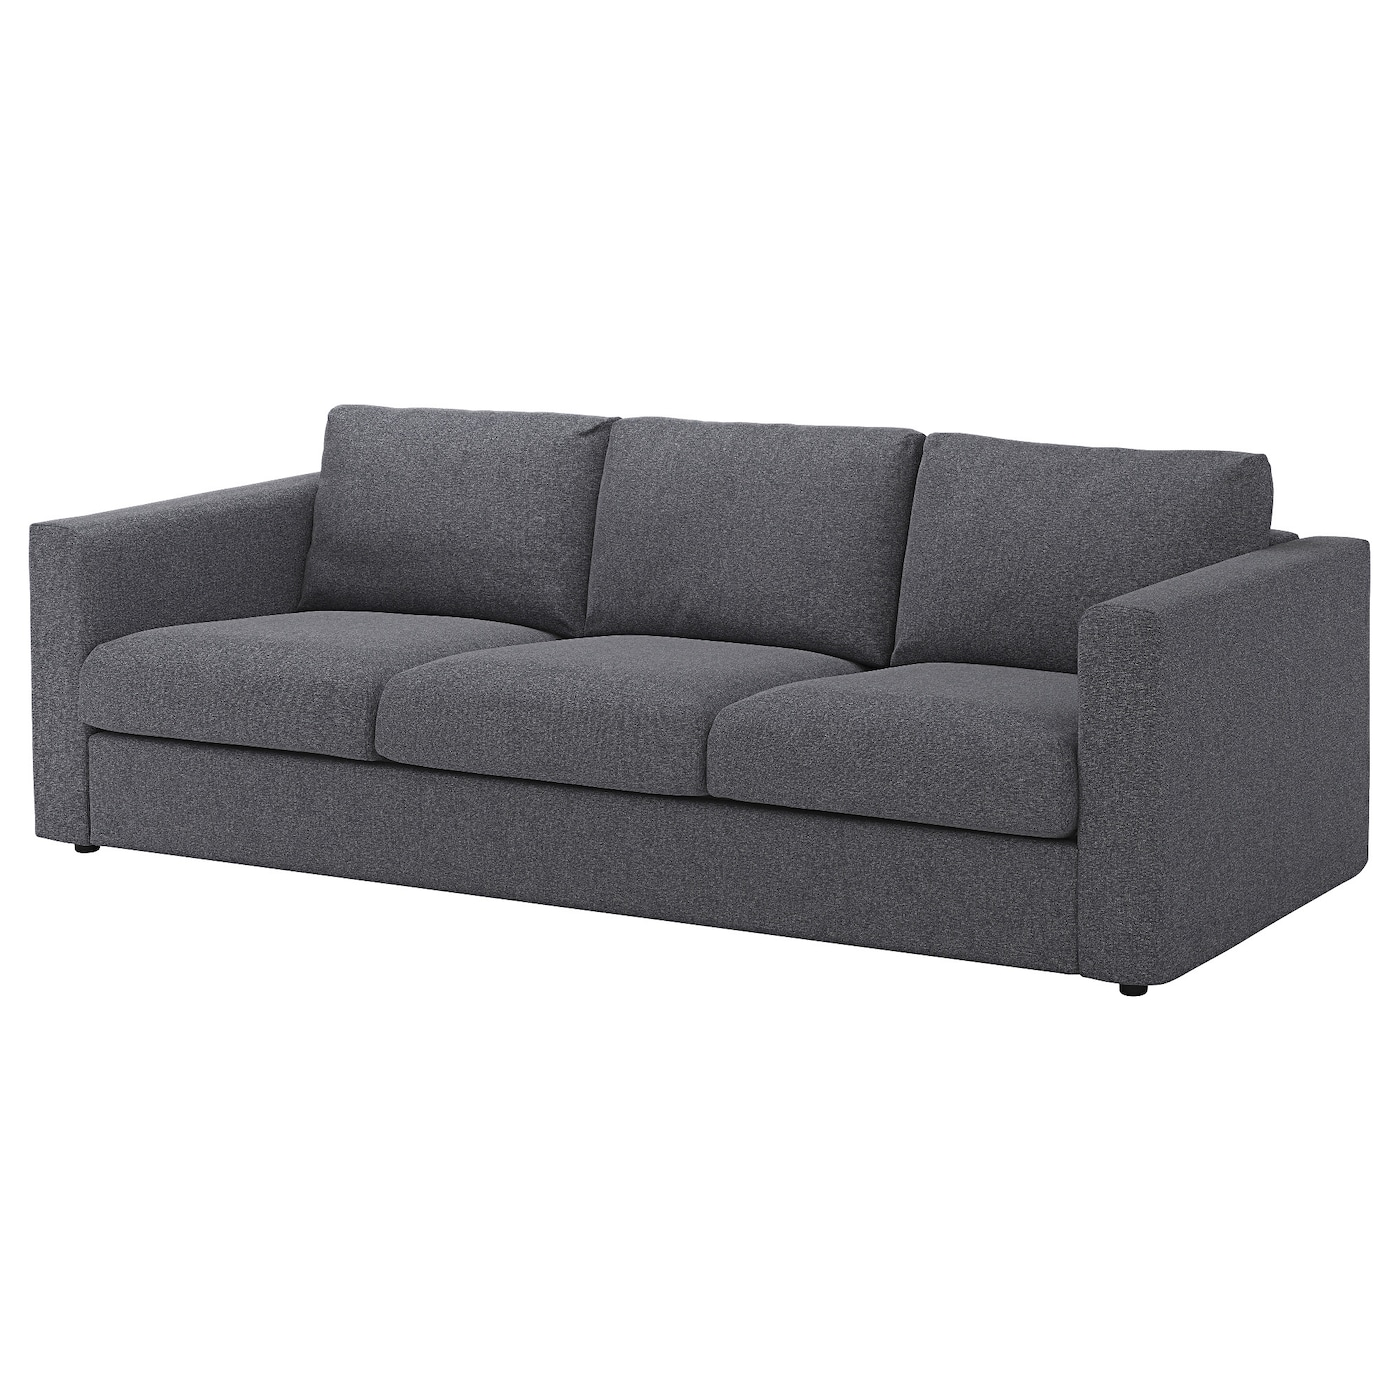 vimle 3 seat sofa gunnared medium grey ikea. Black Bedroom Furniture Sets. Home Design Ideas